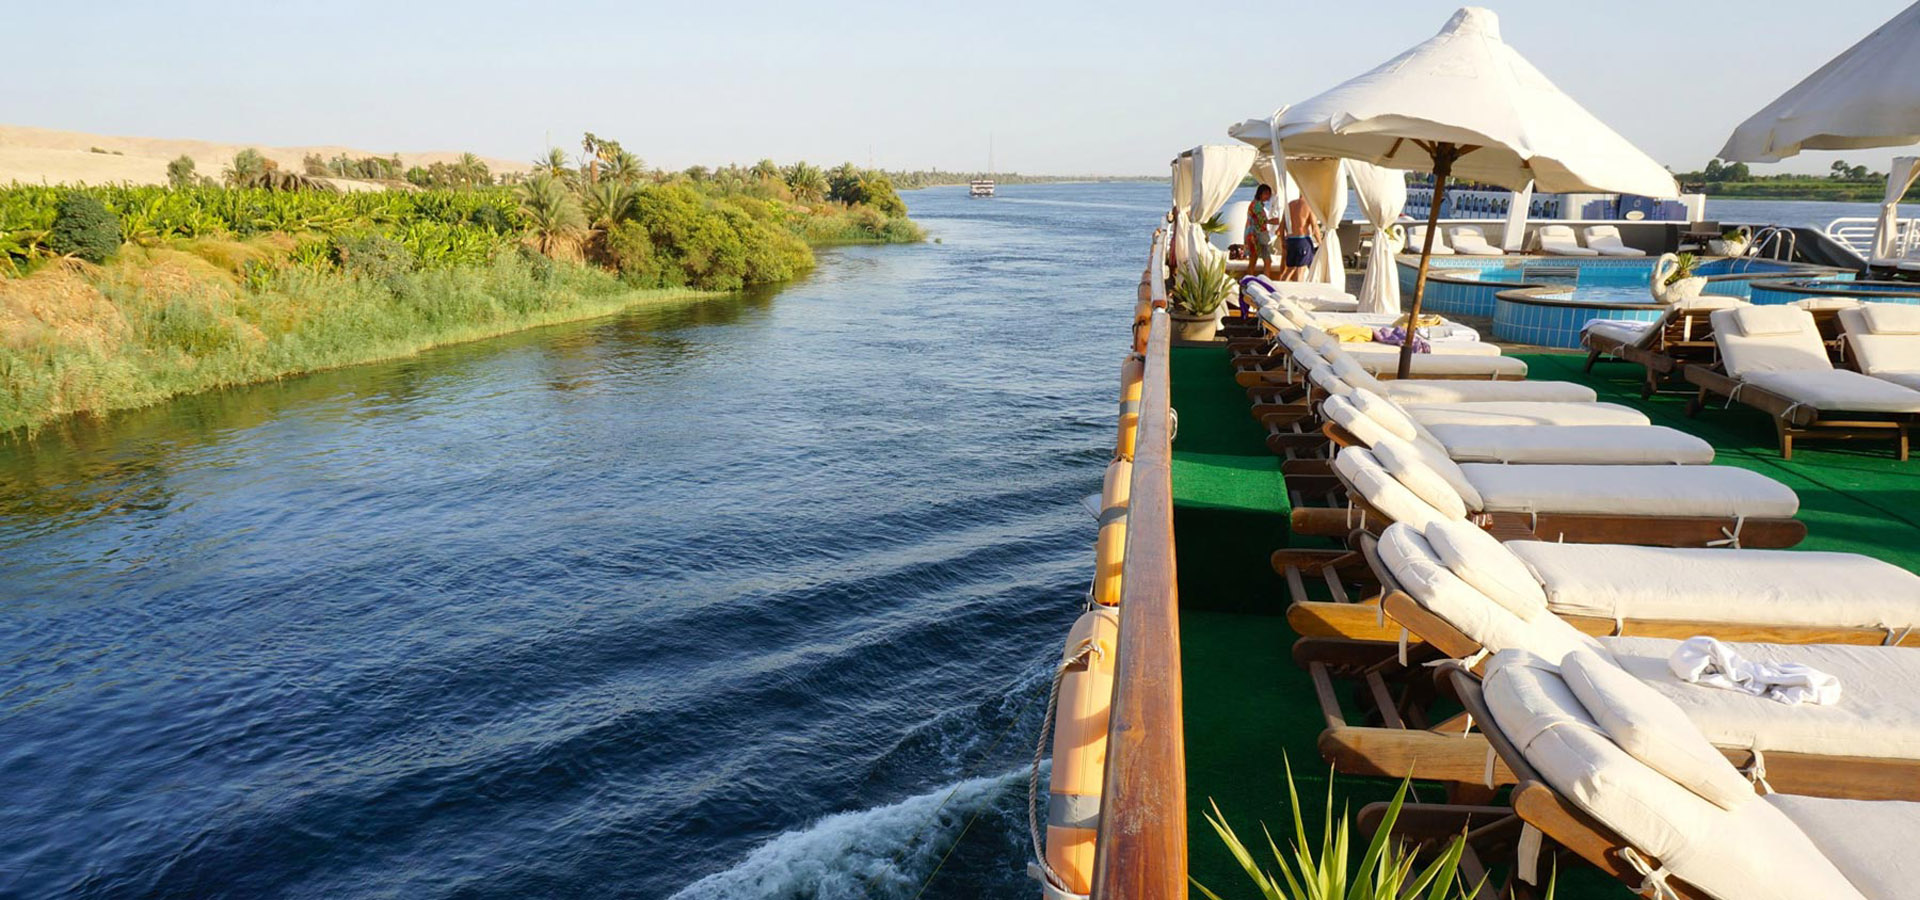 Cairo, Alexandria, Nile Cruise & Hurghada 11 Days / 10 Nights Tour Package